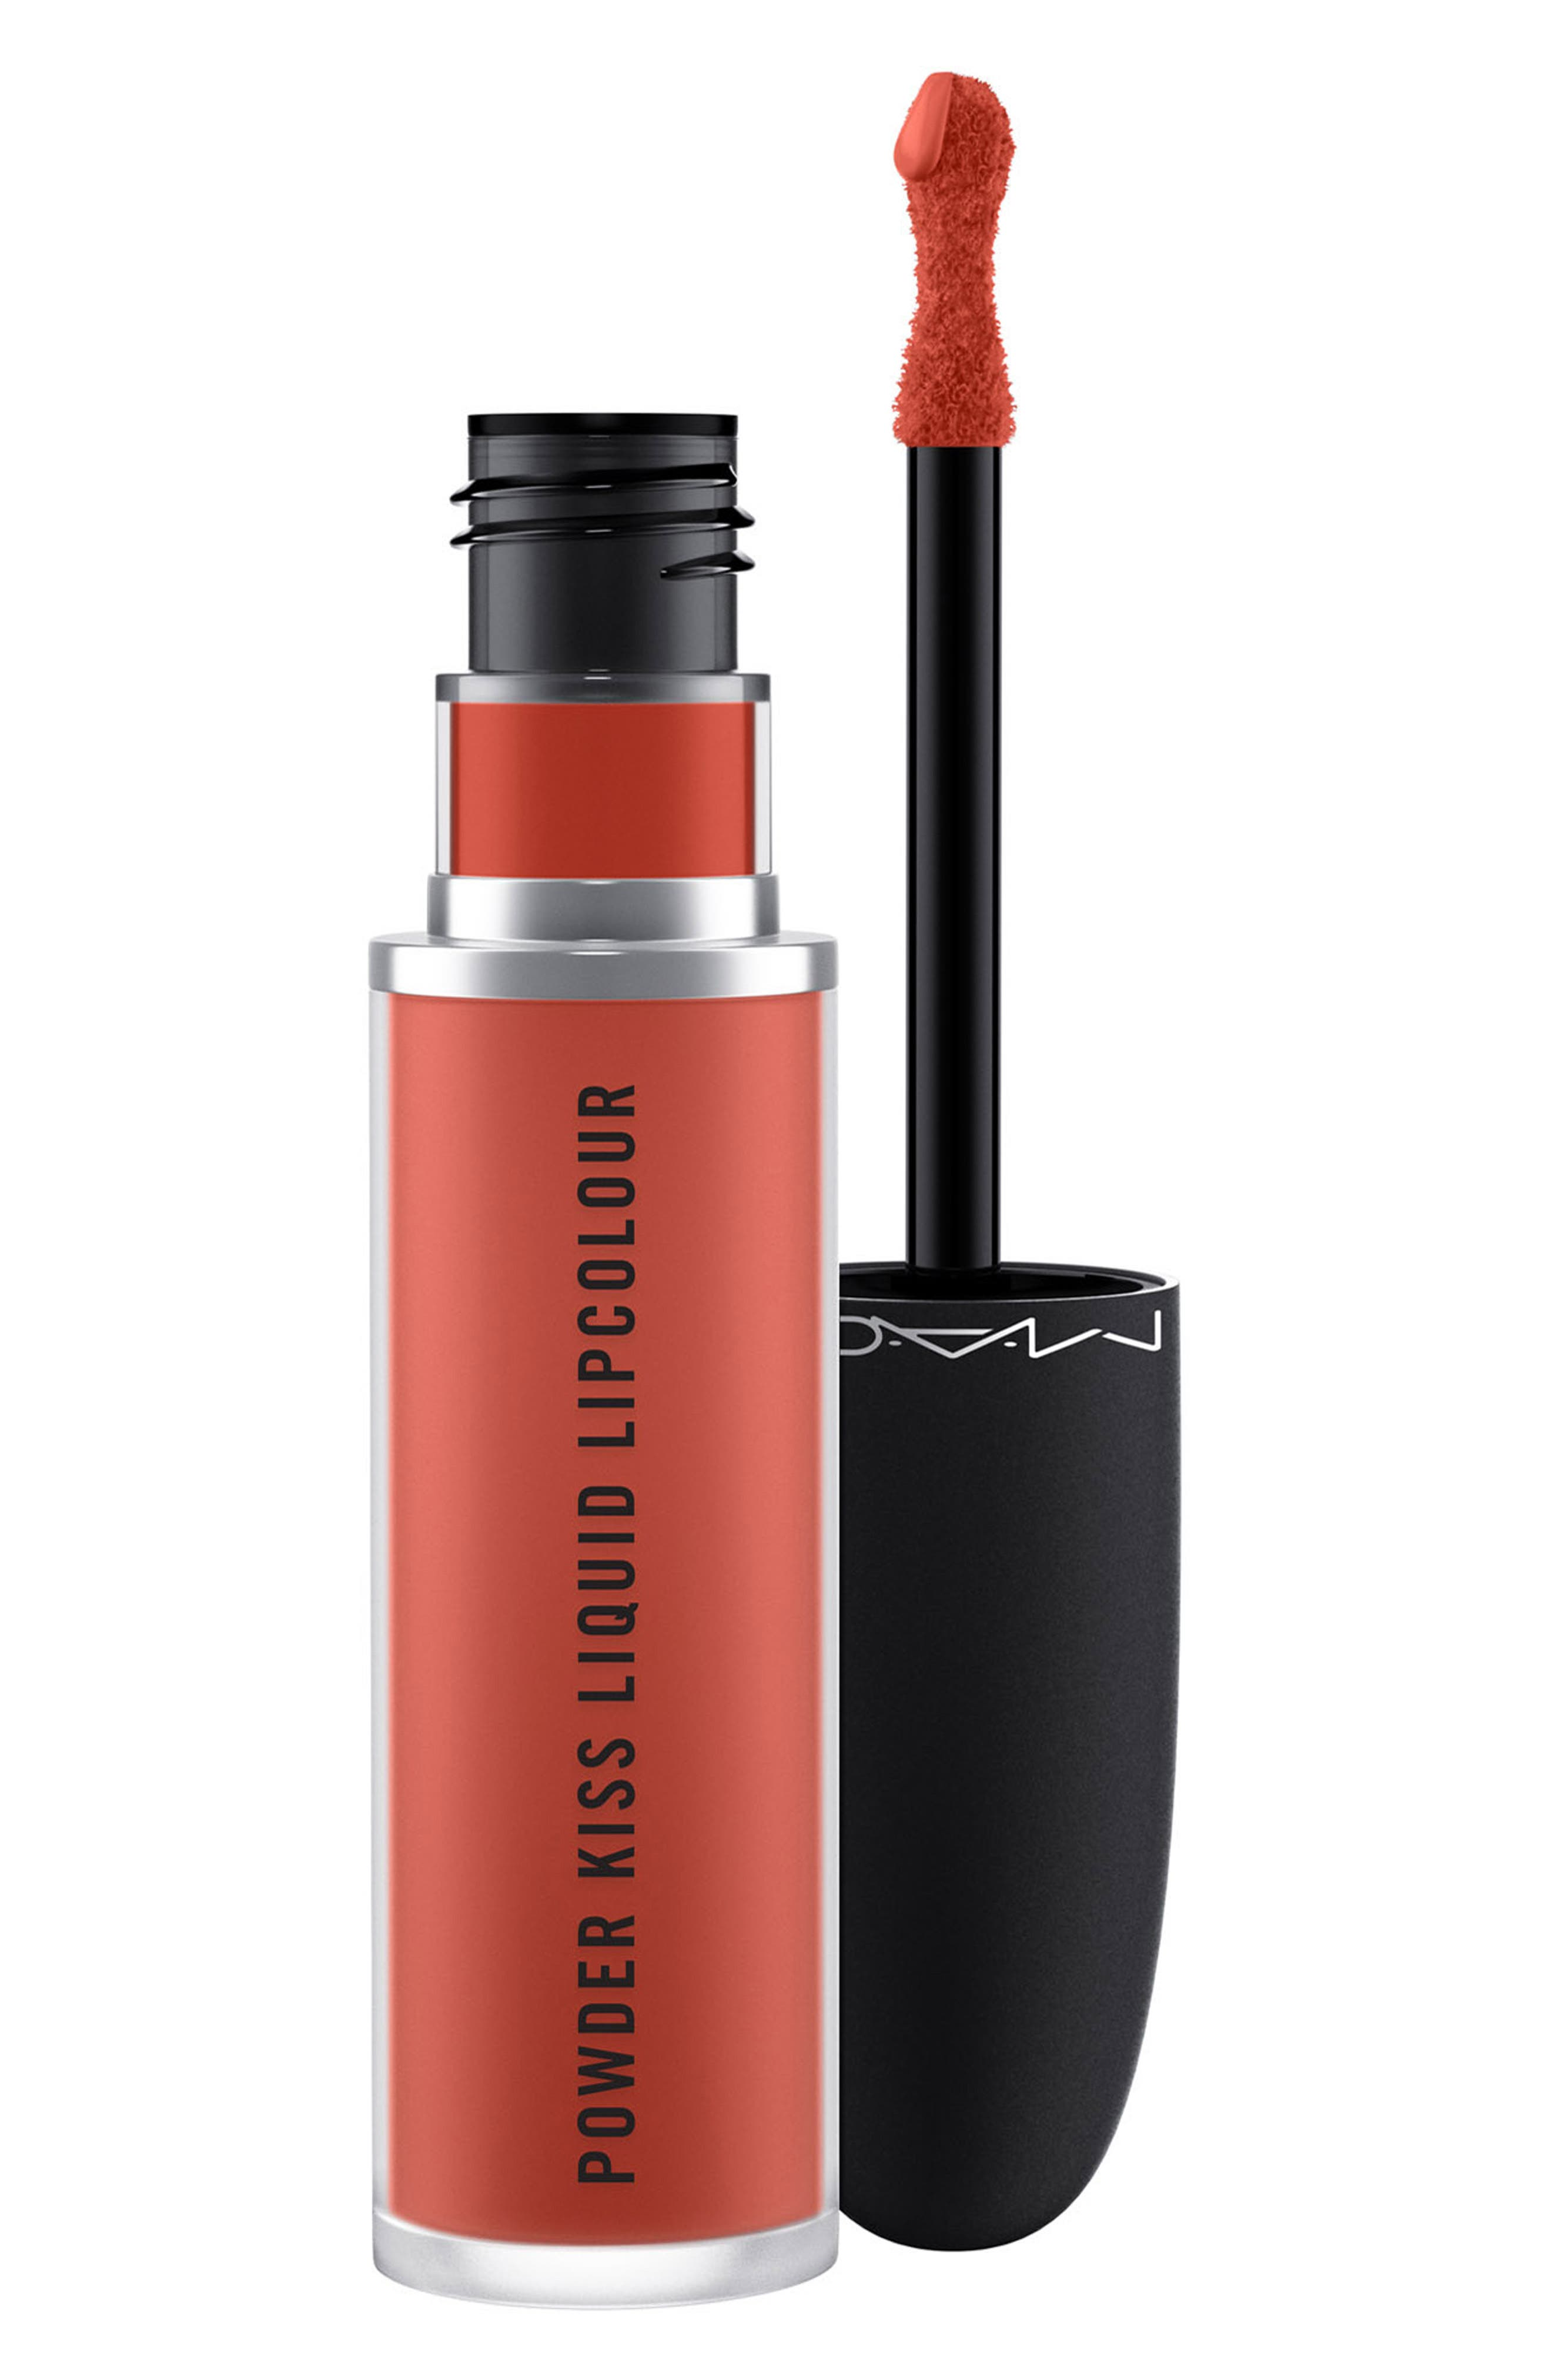 What it is: A long-wearing, smooth liquid lip color that gives you a blurred, high-impact matte look. What it does: Experience a weightless kiss of color delivering 10 hours of moisture. Its whipped, mousse-like texture softly and evenly kisses lips with just the right amount of comfortable color. The special blend of powders and emollient properties provides excellent cushion, flexibility, wear and moisture that will leave lips looking and